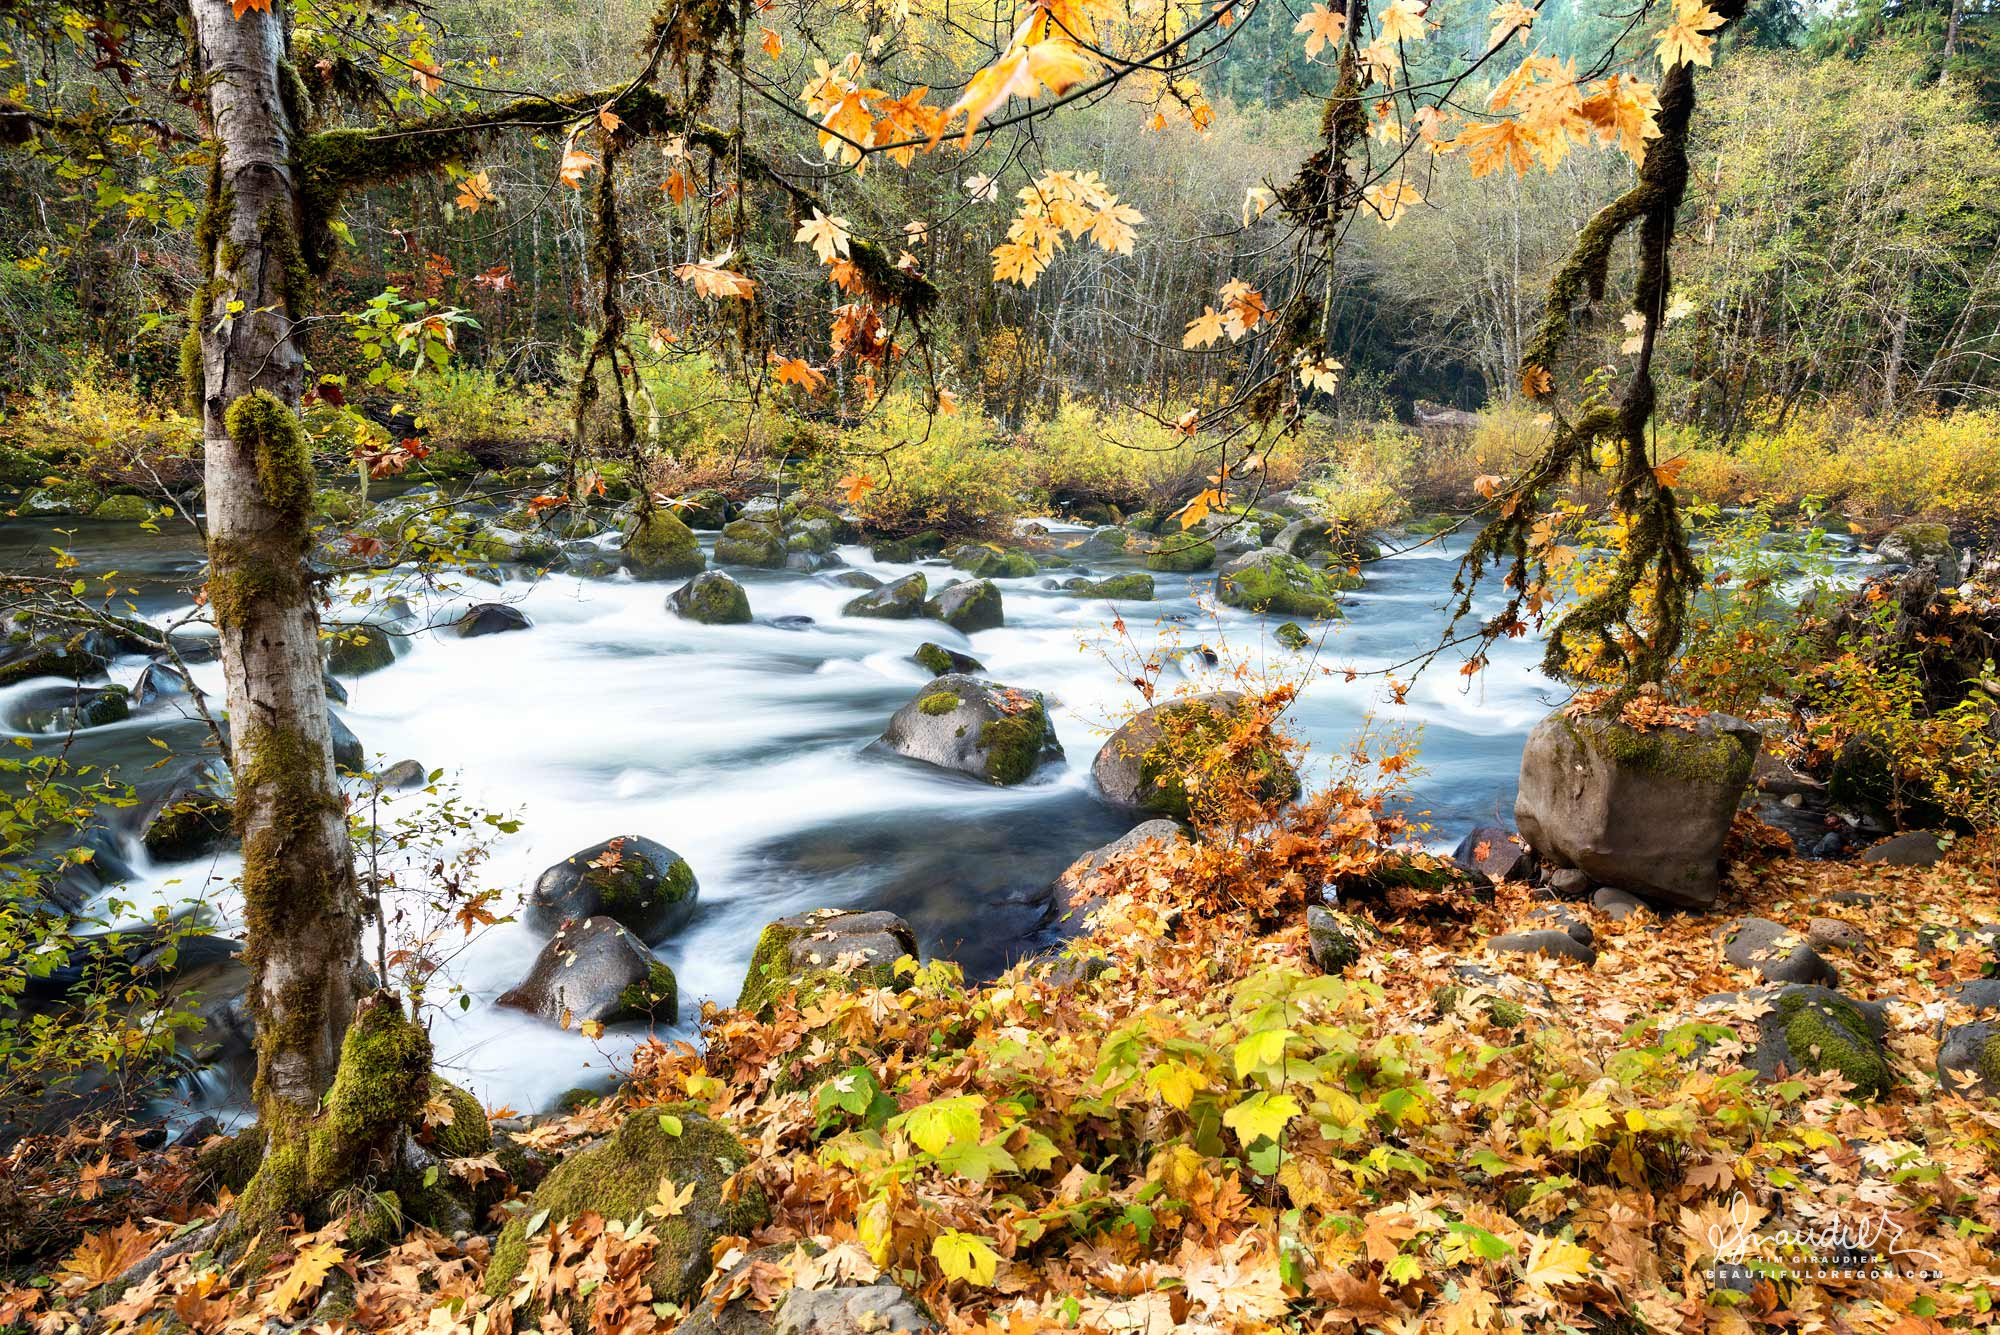 Bigleaf Maple and Thimbleberry turn autumn gold as winter makes its approach along the North Fork of Middle Fork Willamette River. Willamette National Forest, Oregon West Cascades.